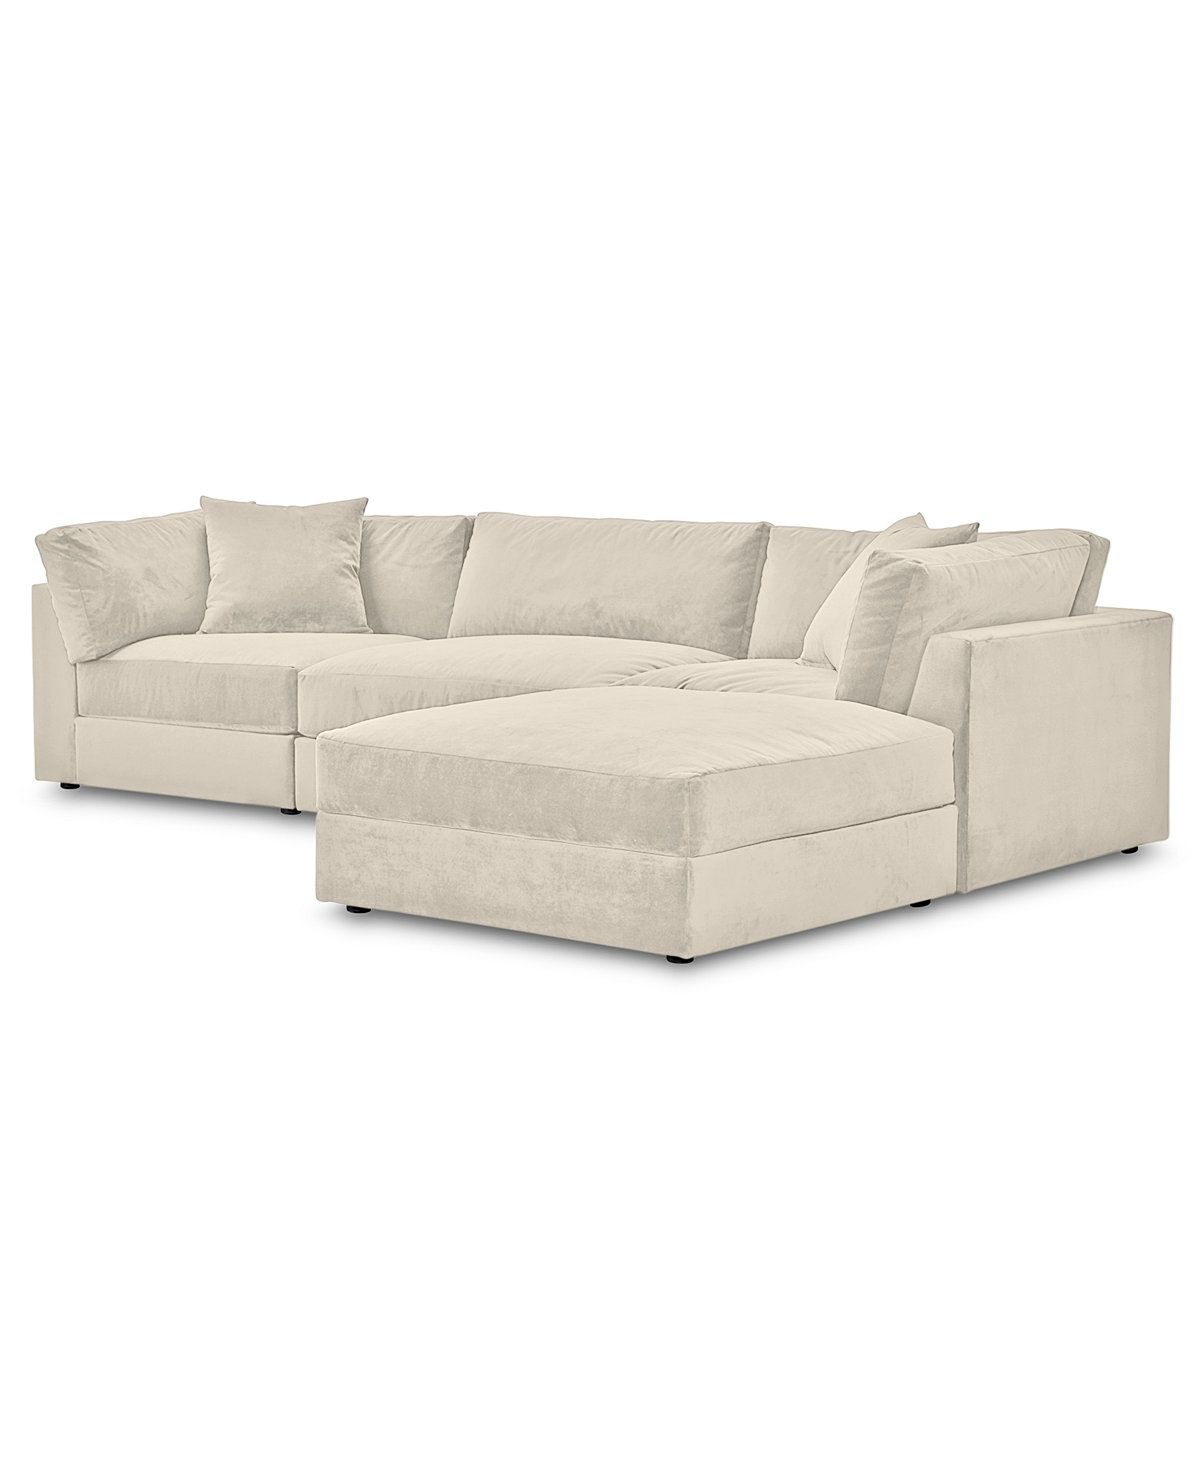 Couches 4 Aryanna 4 Pc Modular Sofa With Ottoman Custom Color Only At